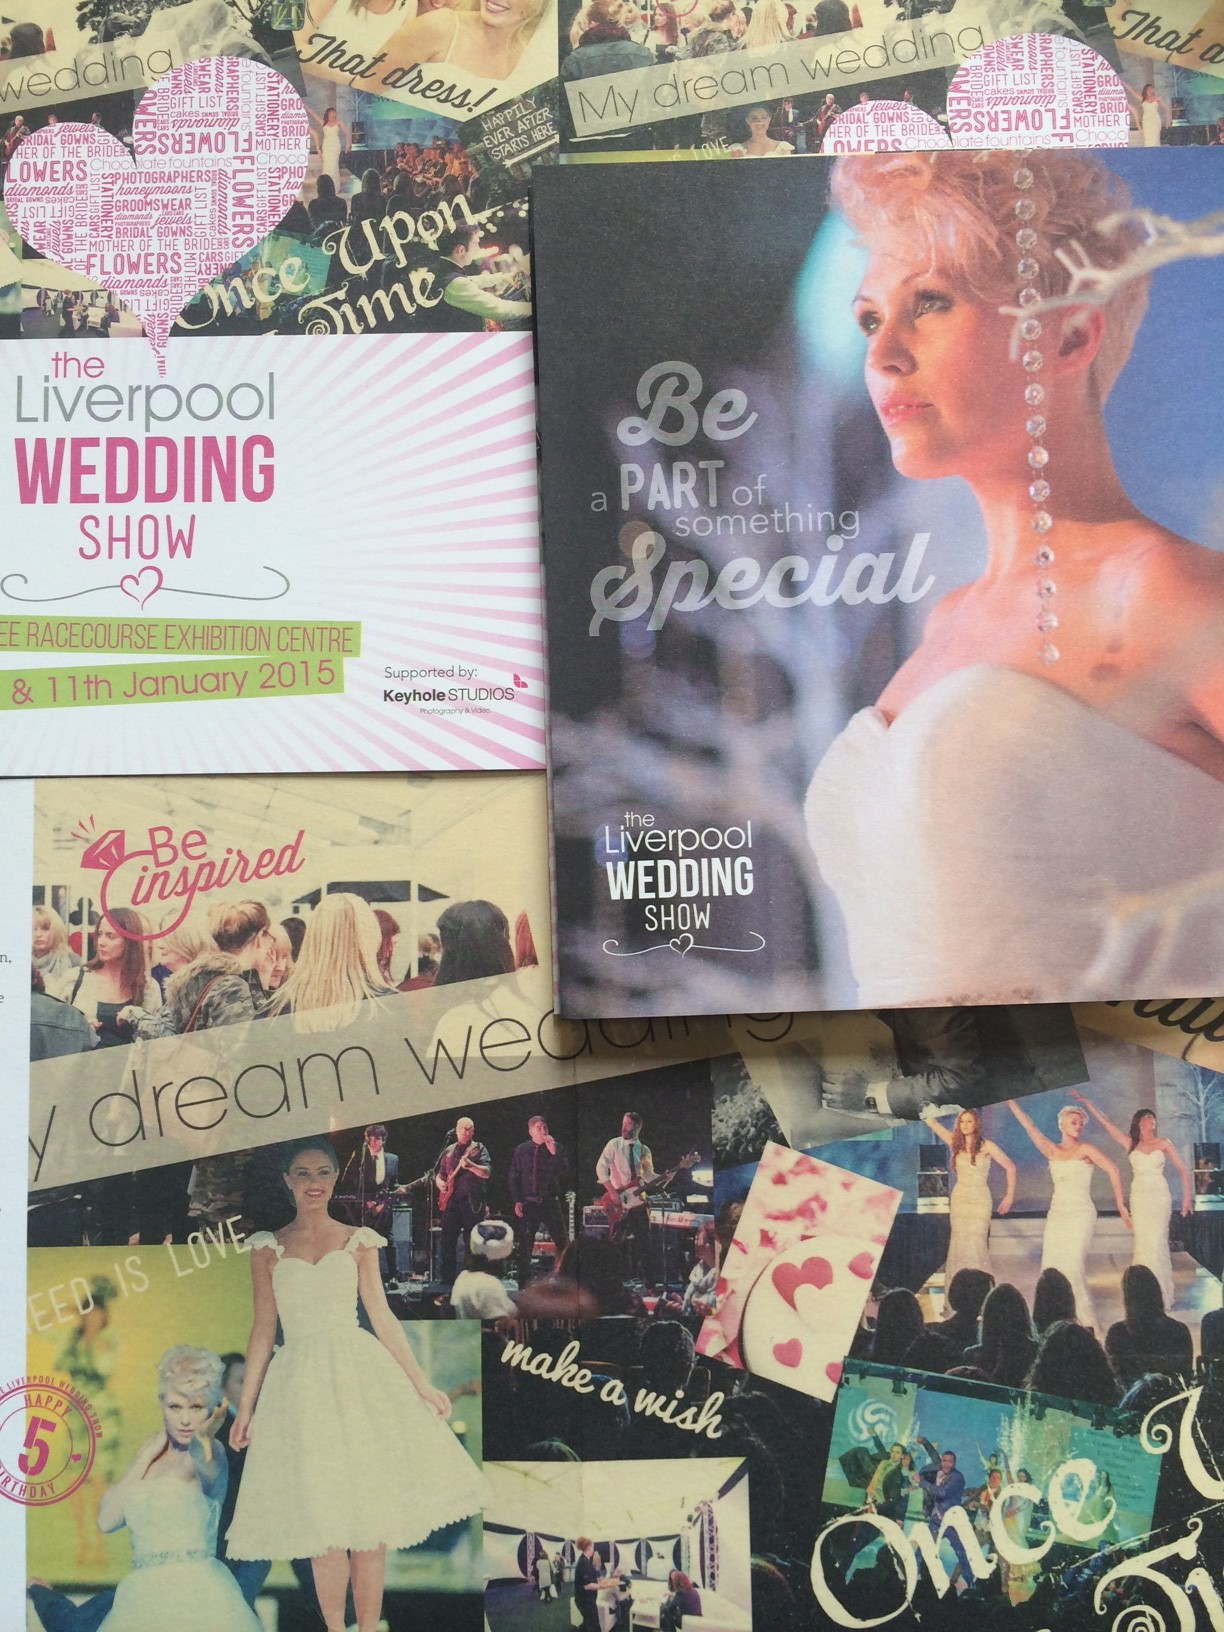 The Liverpool Wedding Show Re-brand